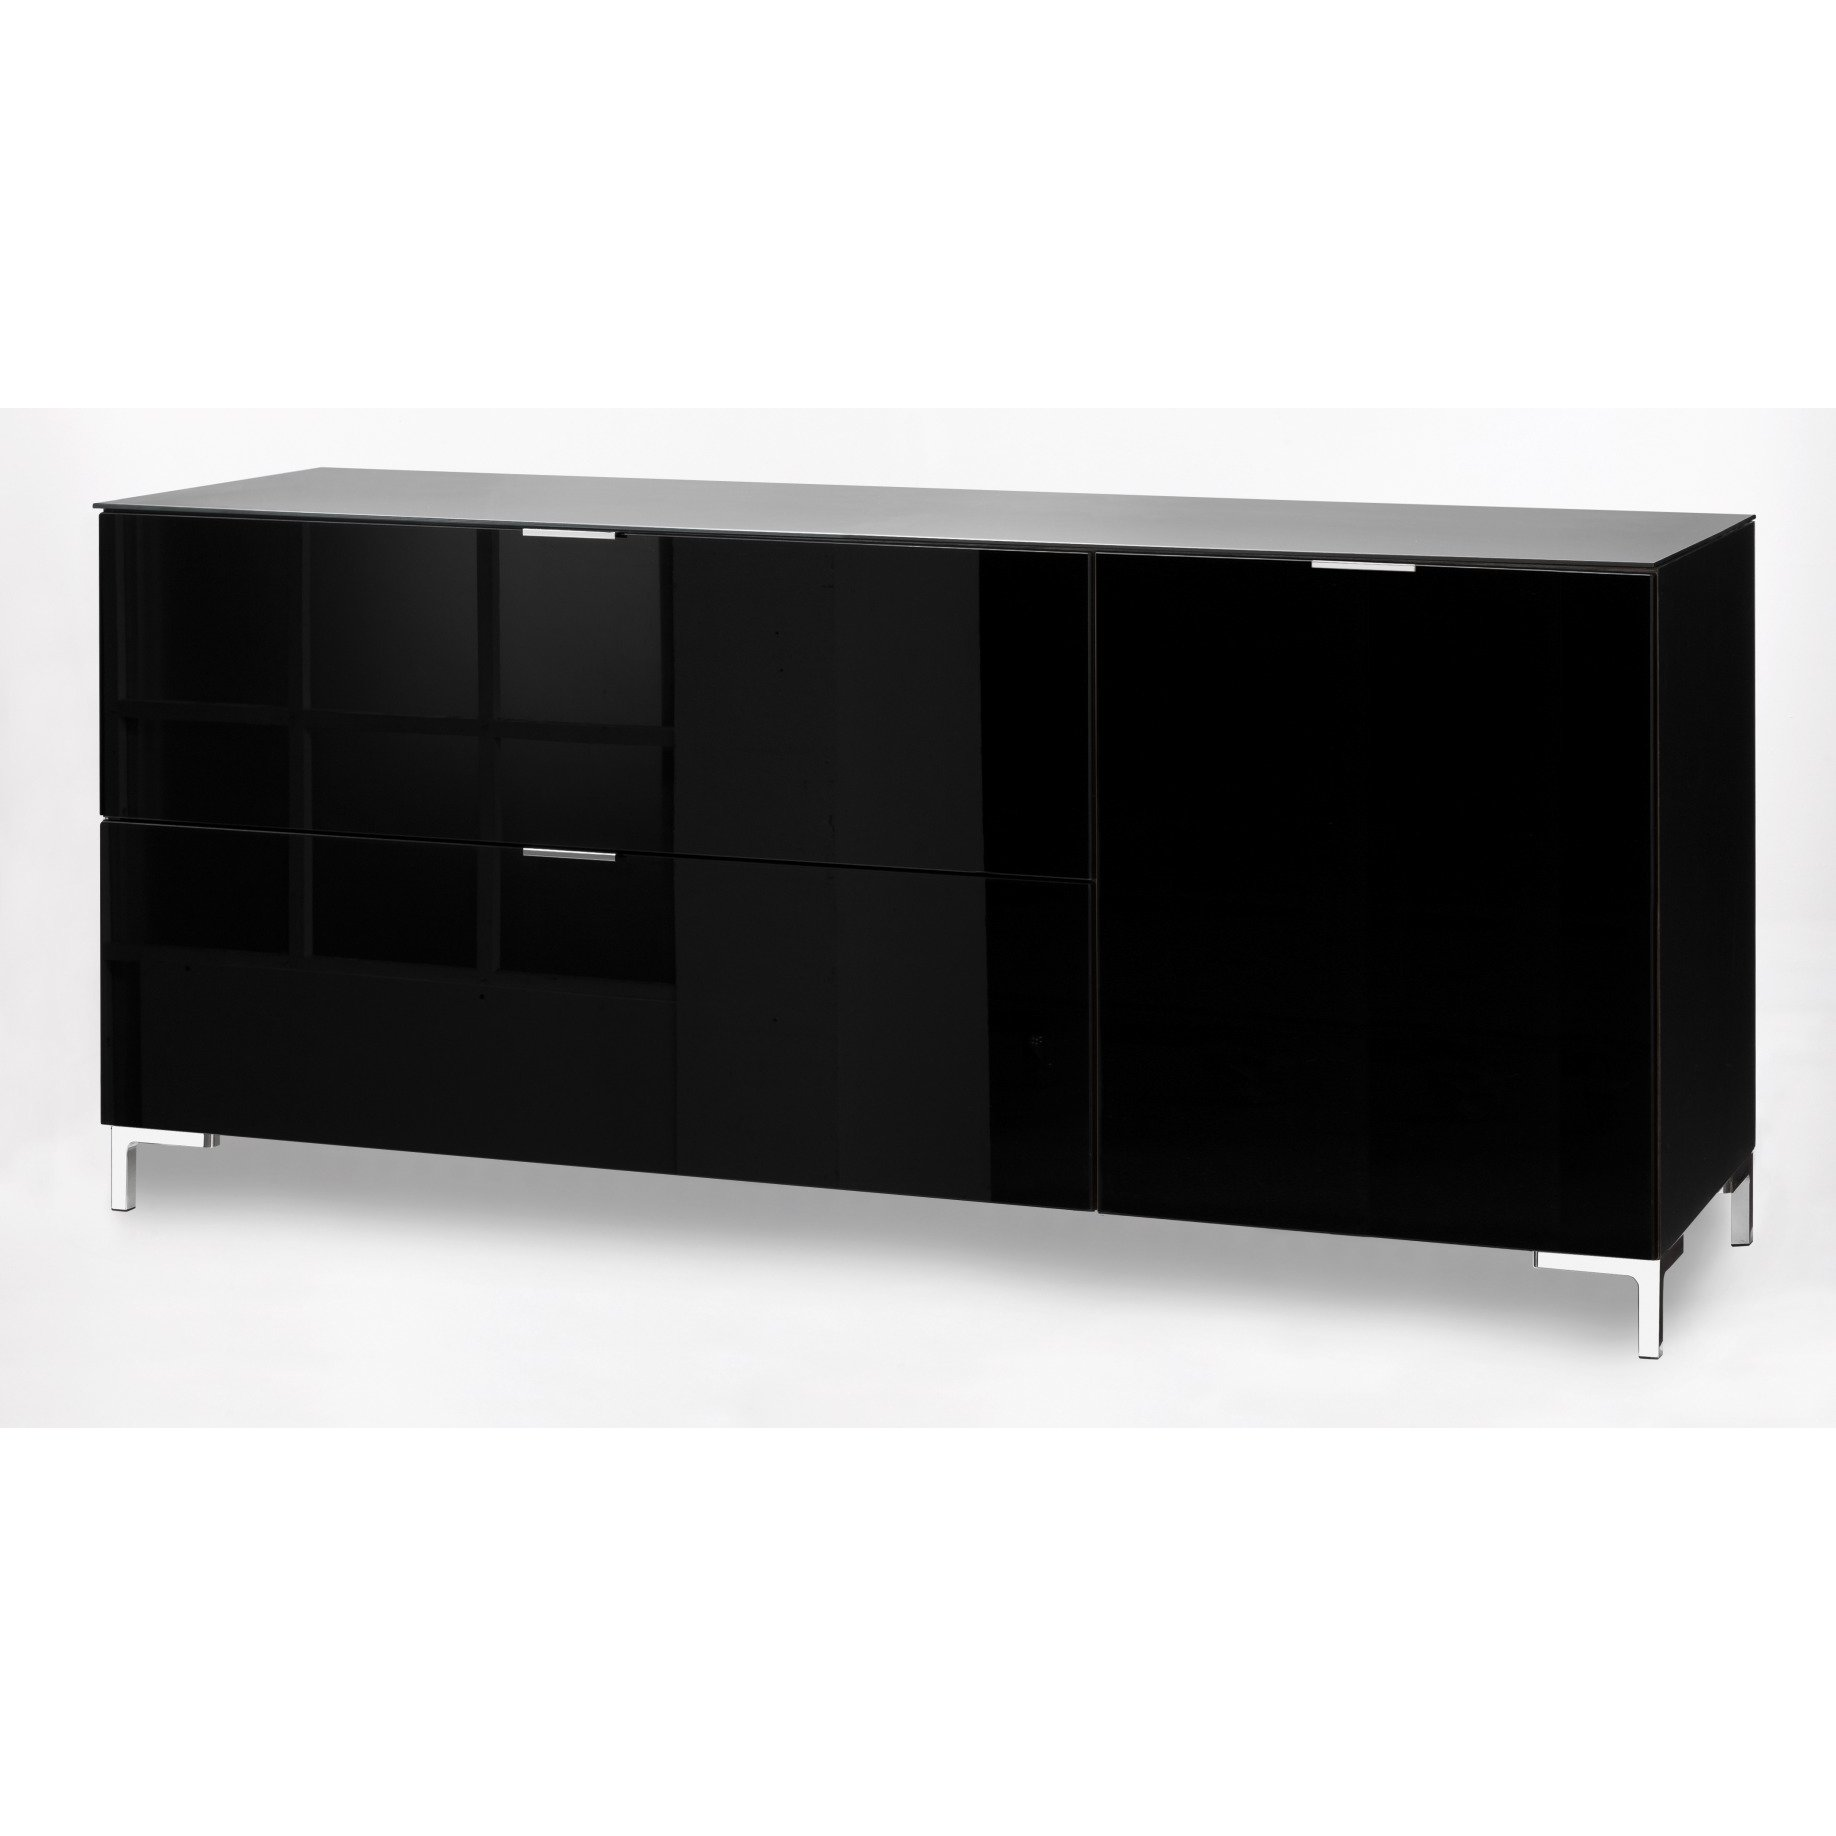 7 sparen cs schmal tv schrank cleo gro nur 419 99 cherry m bel. Black Bedroom Furniture Sets. Home Design Ideas